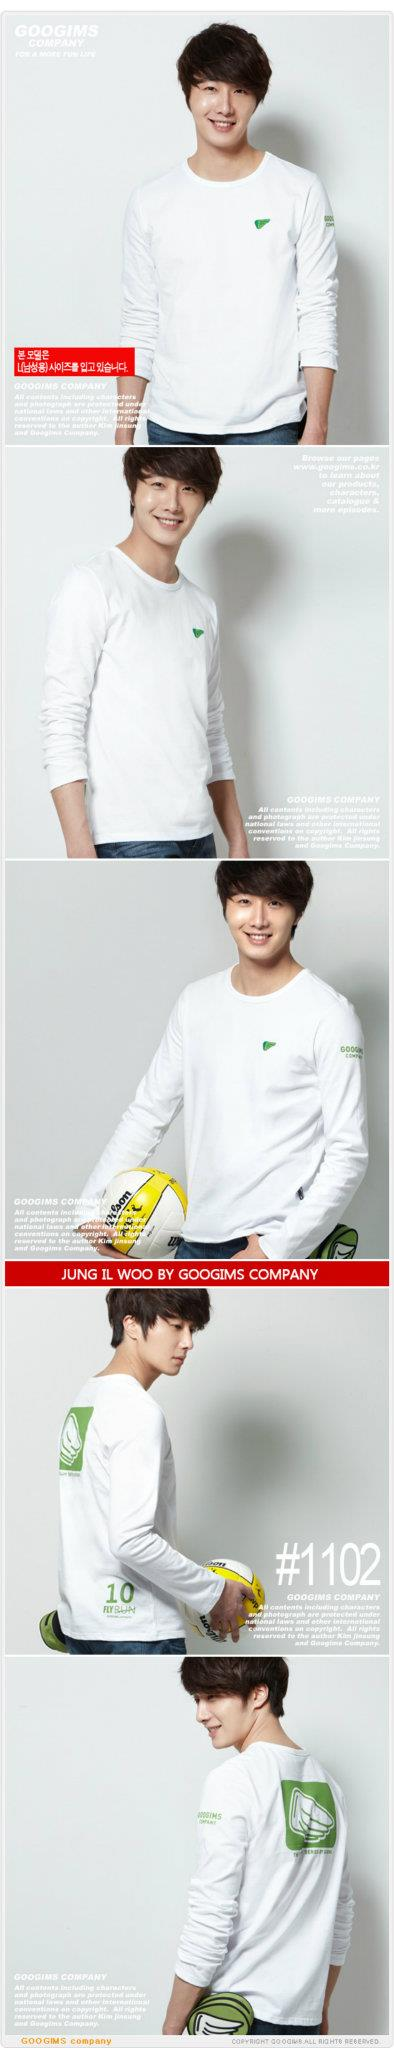 2011 10 Jung II-woo for Googims. Part 100026